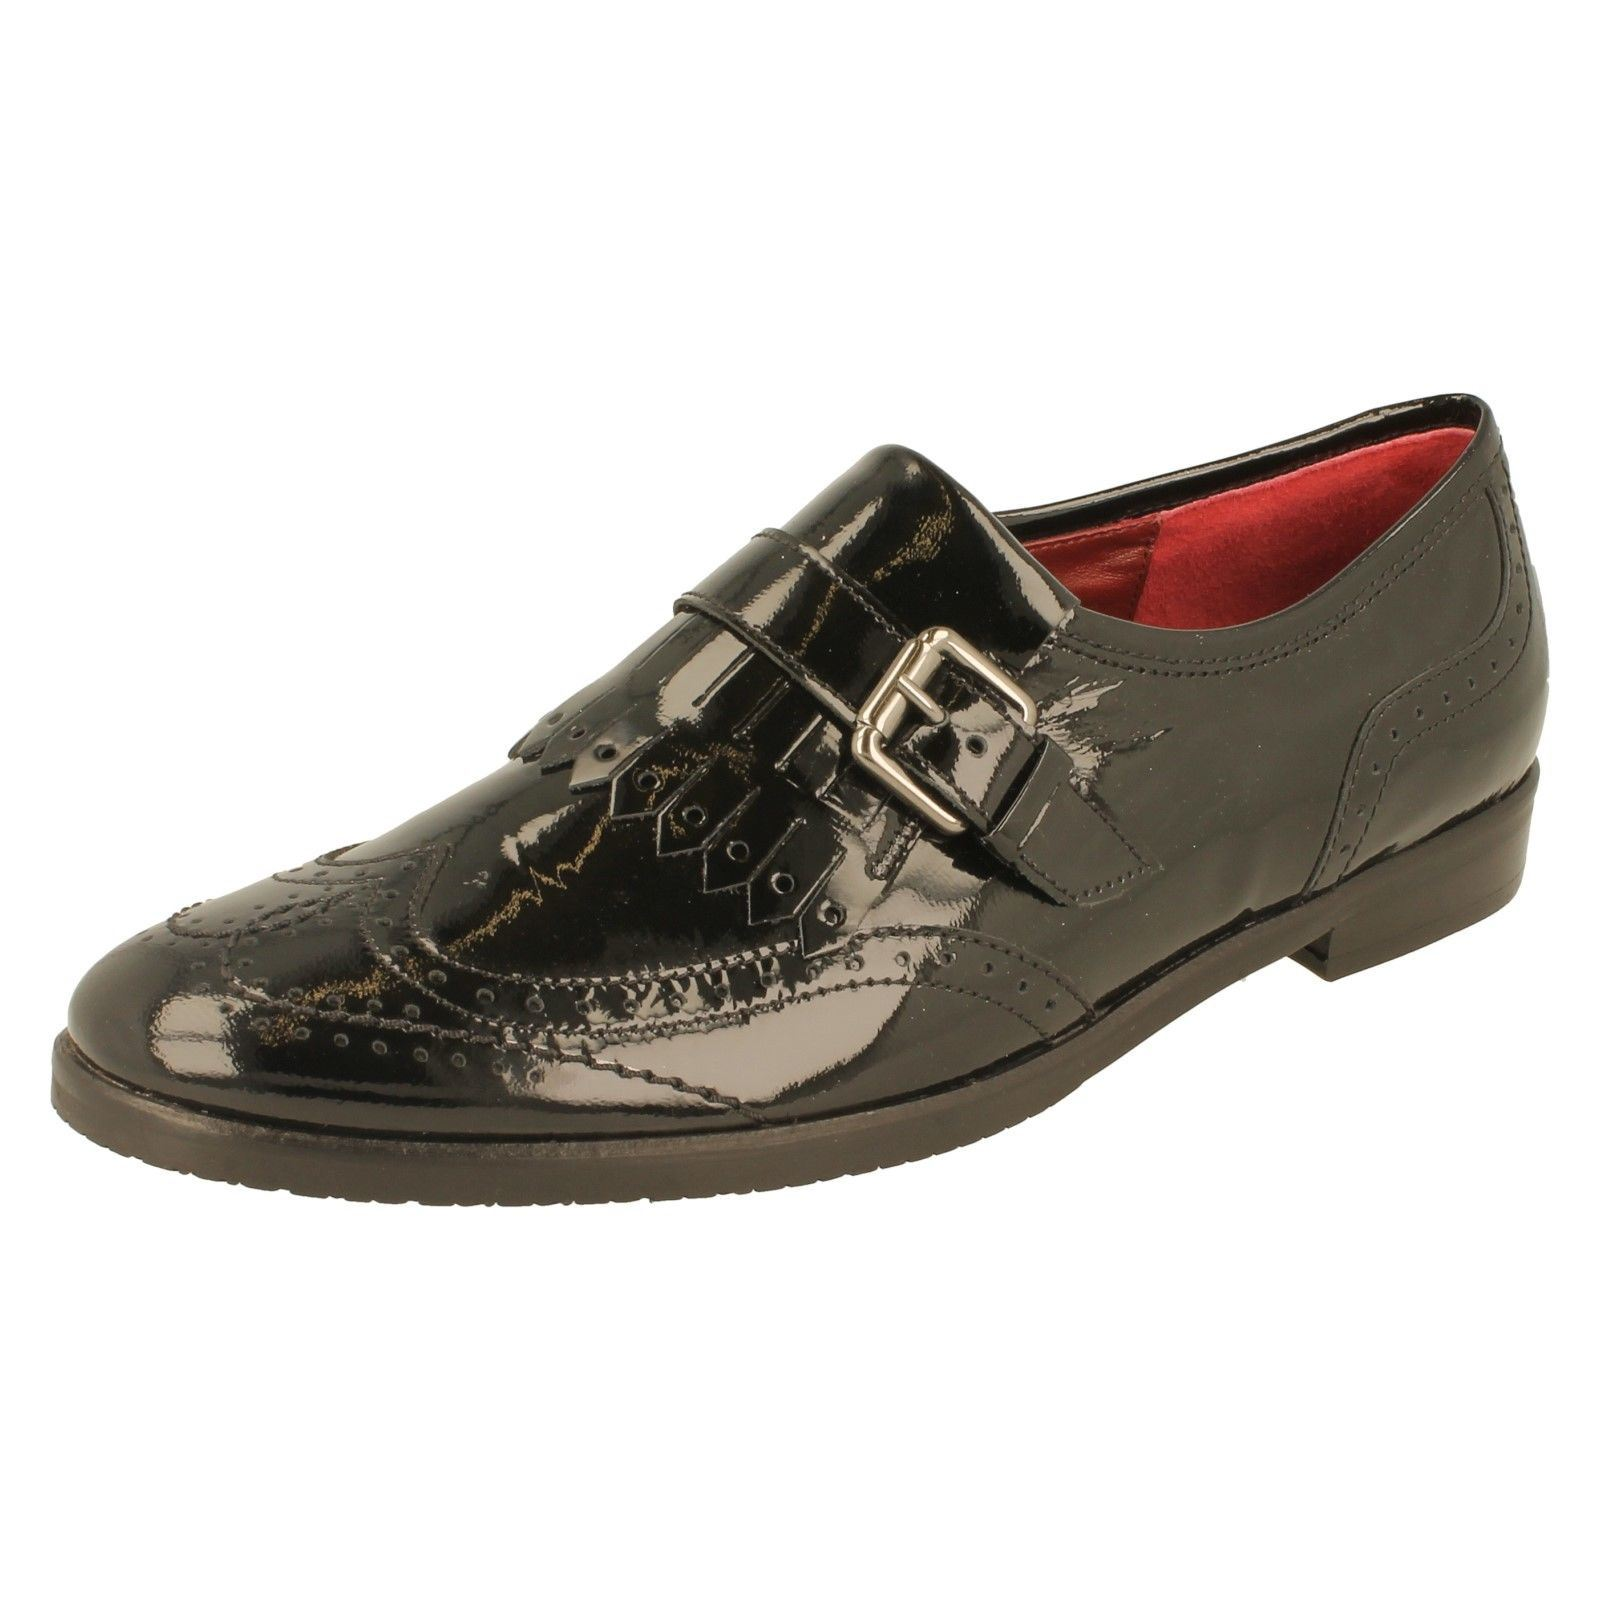 Gabor Sneakers Ladies Gabor Shoes Style 32654 W Ebay